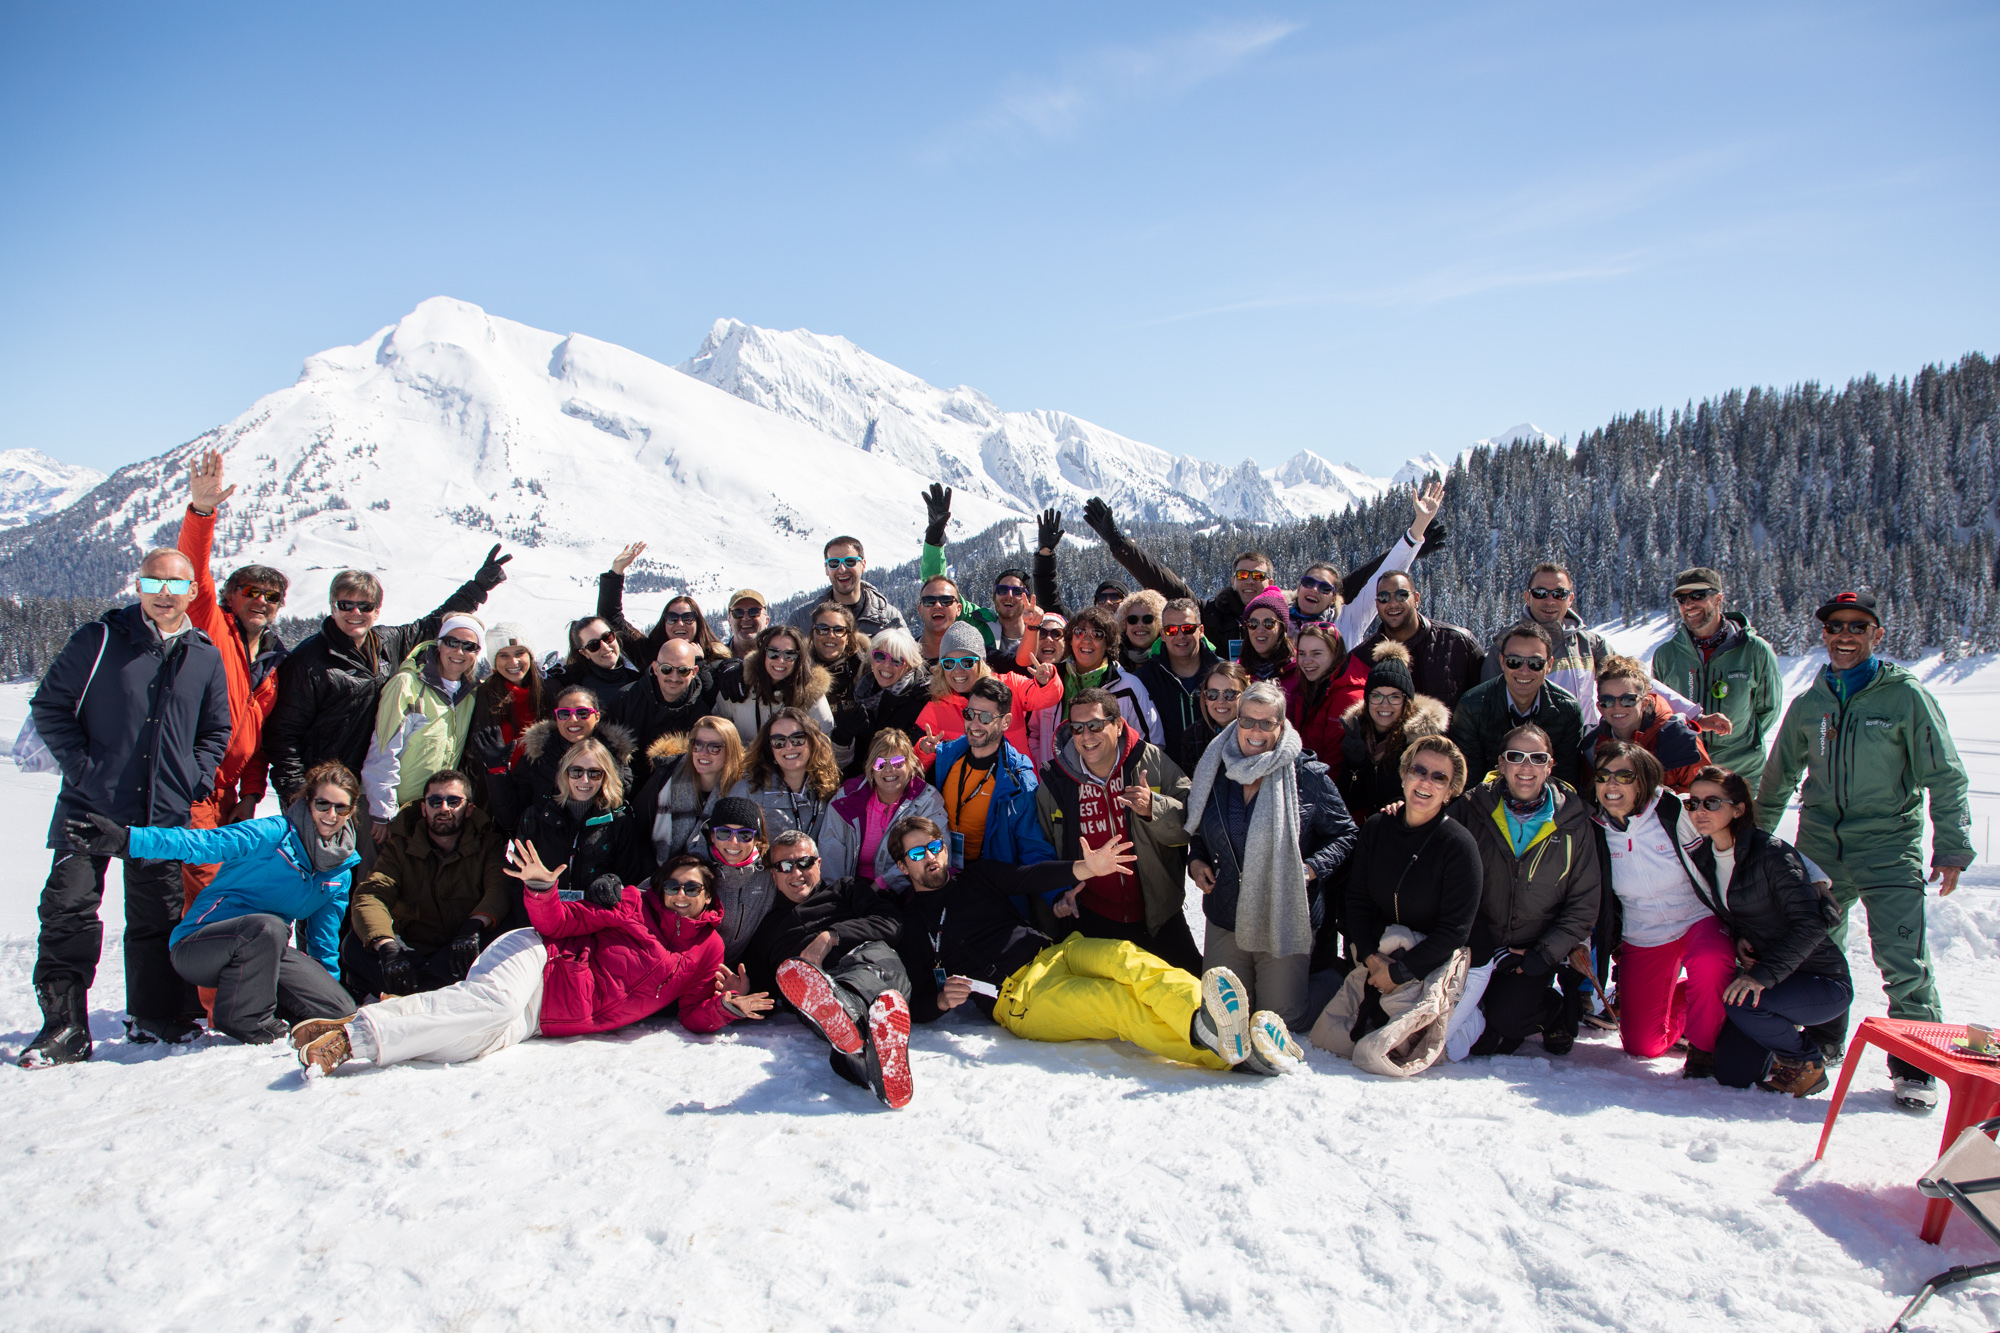 Break_The_Ice_LaClusaz_2019_web-6767.jpg